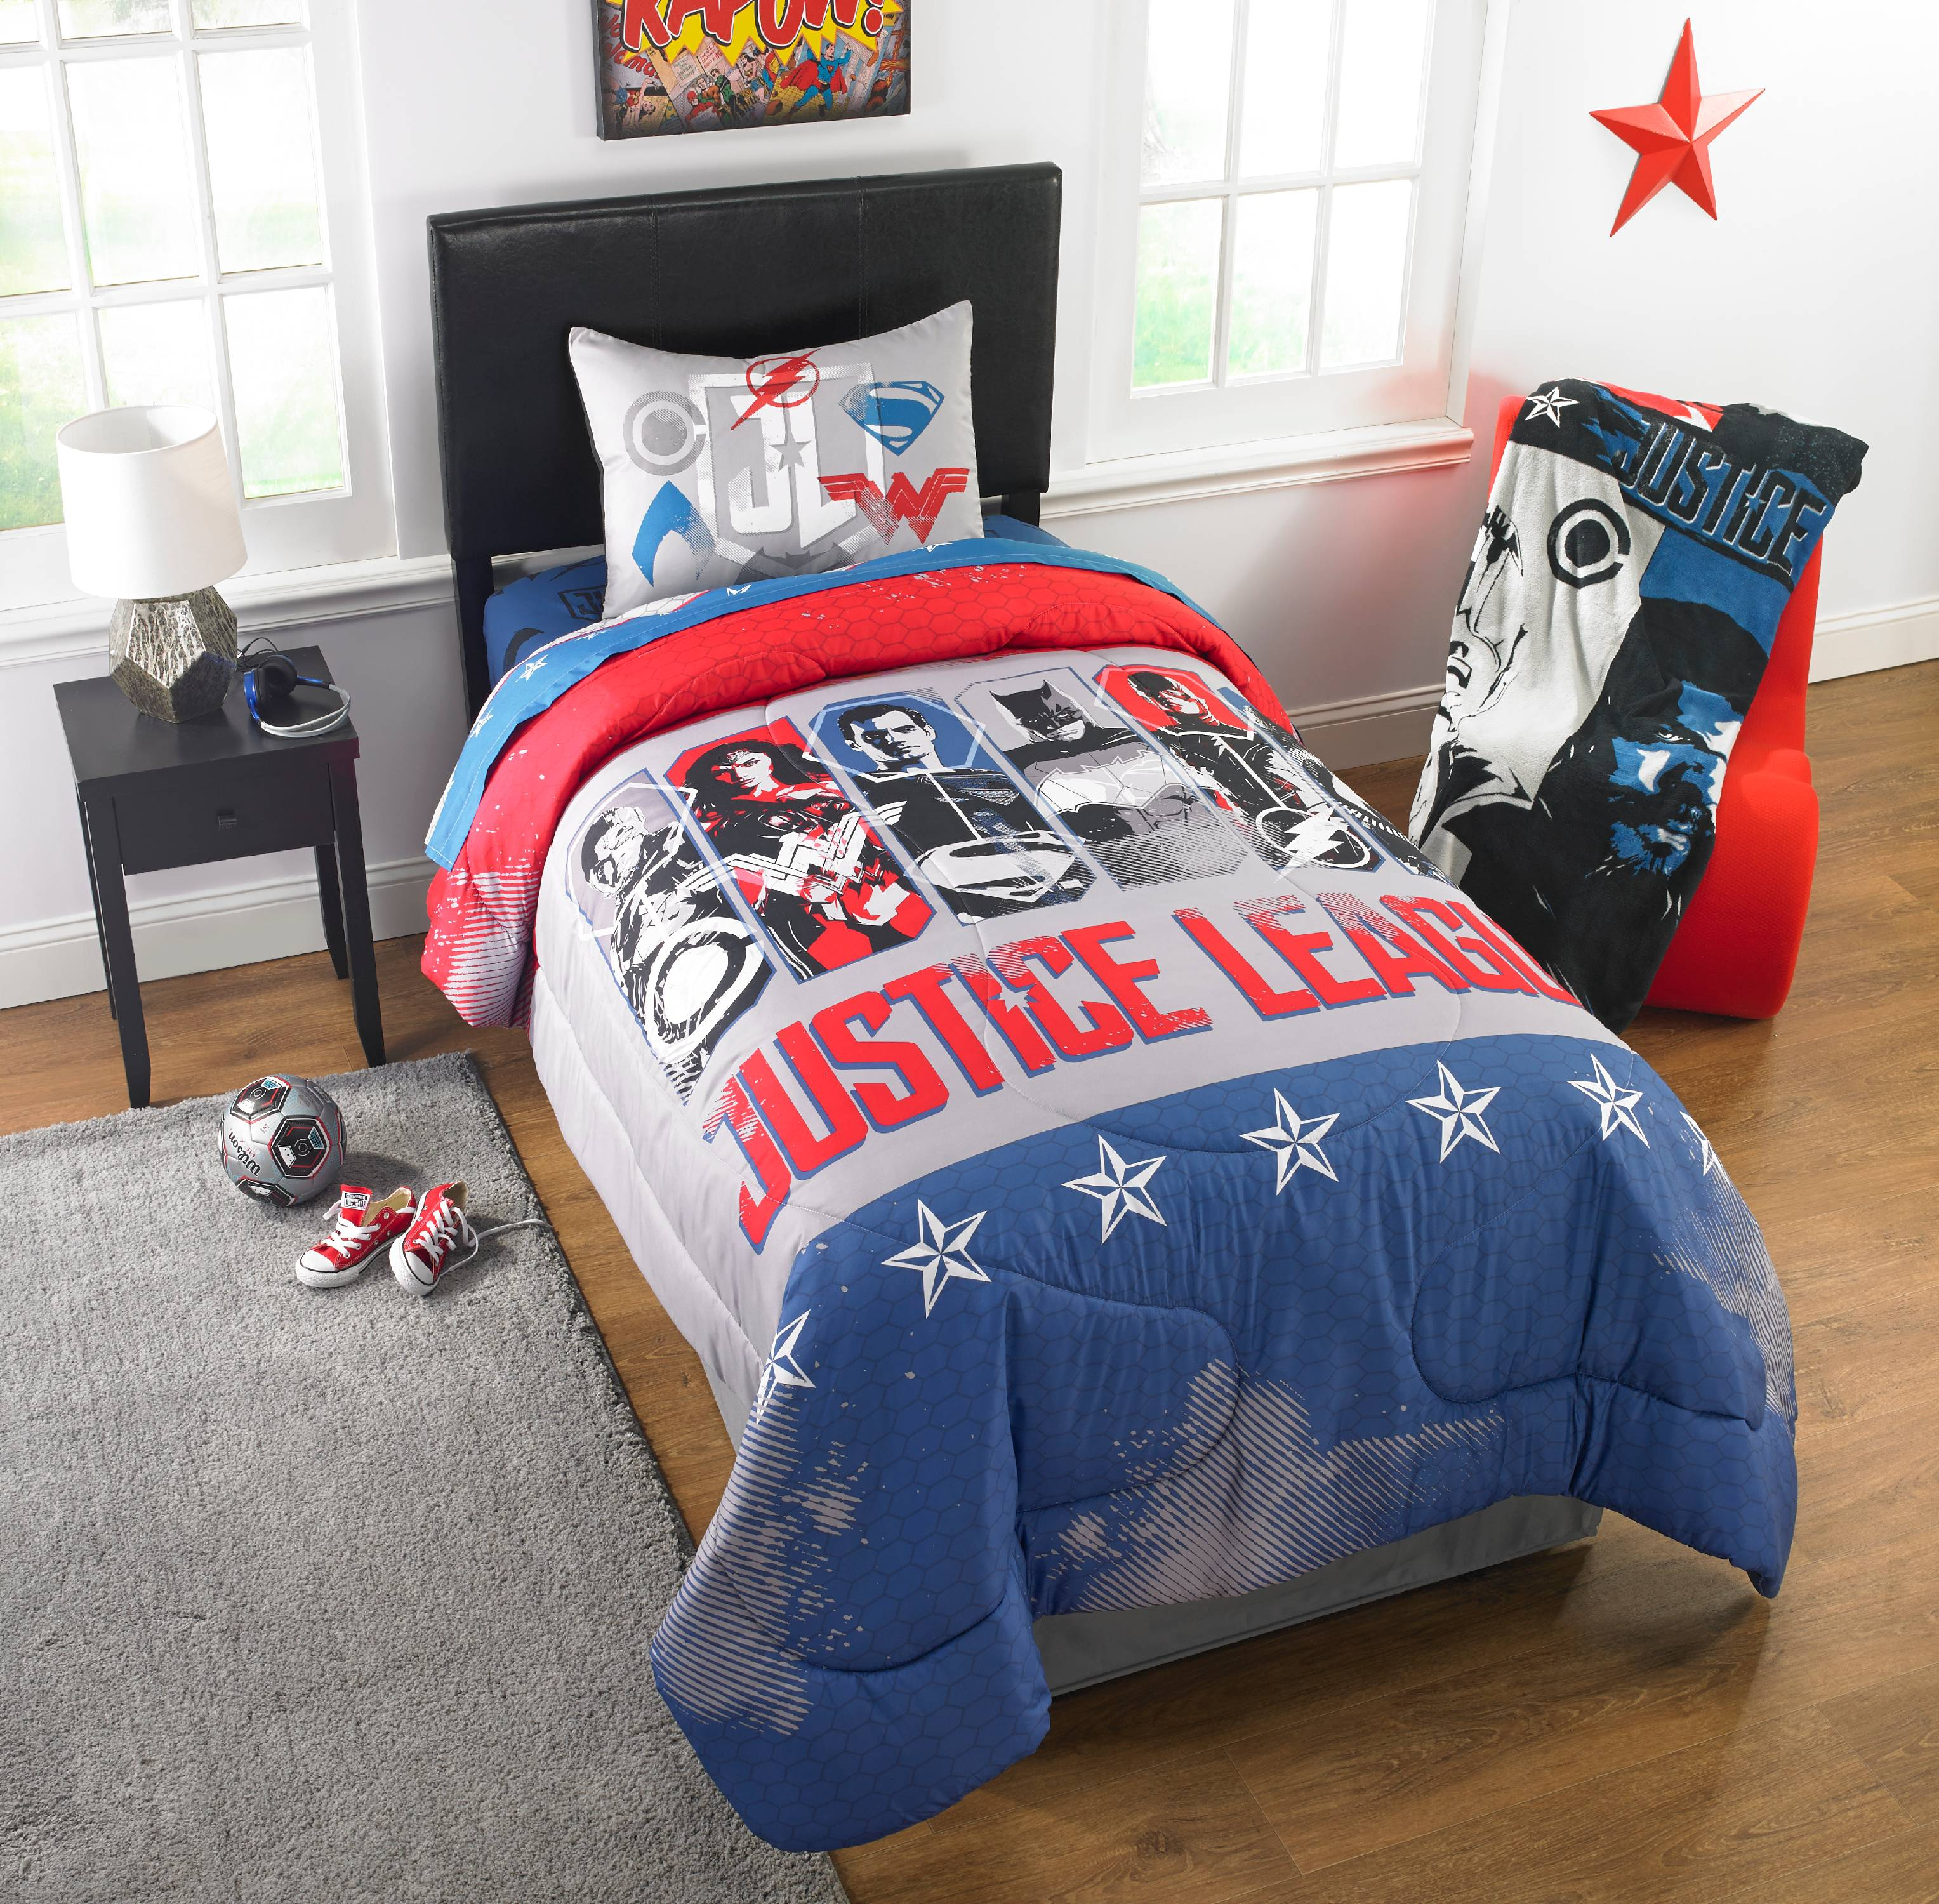 Justice League Movie 'Call for Justice' Kid's Bedding Reversible Twin/Full Comforter with Sham